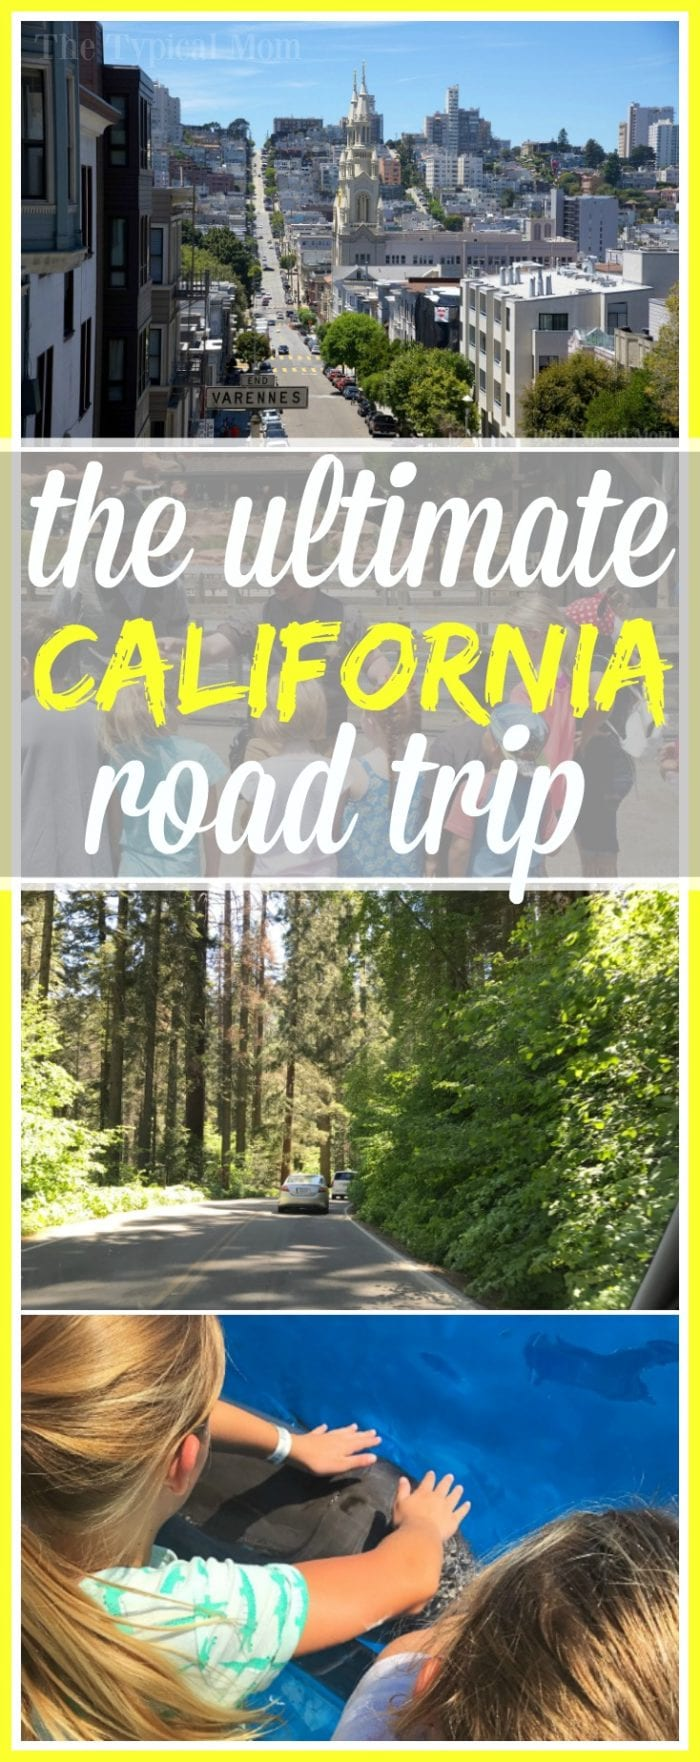 If you're looking to plan the ultimate California coast road trip we've been everywhere and have some ideas for you! Here's where to stay and what to see.